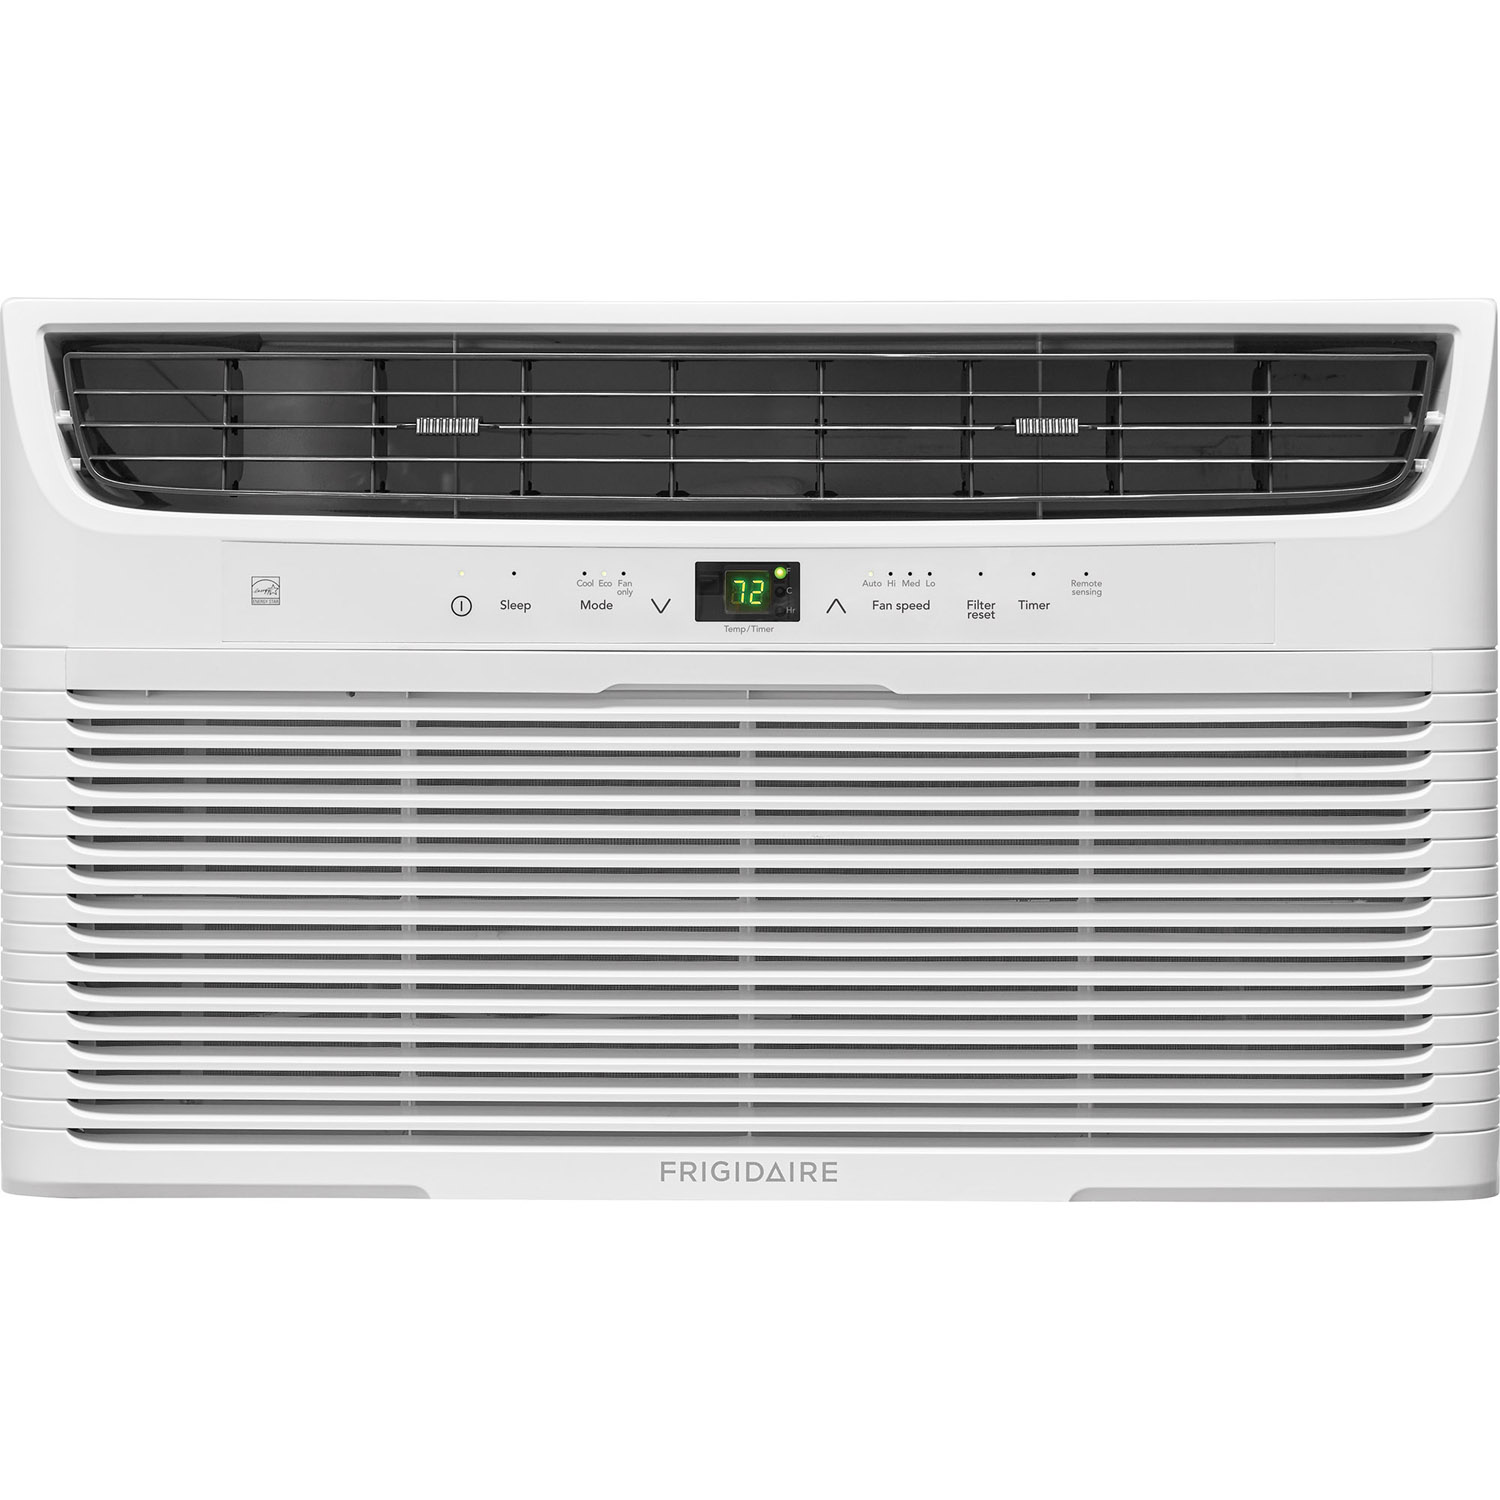 Frigidaire Home Comfort White 10,000 BTU 10.6 EER 230V Through-The-Wall Air Conditioner